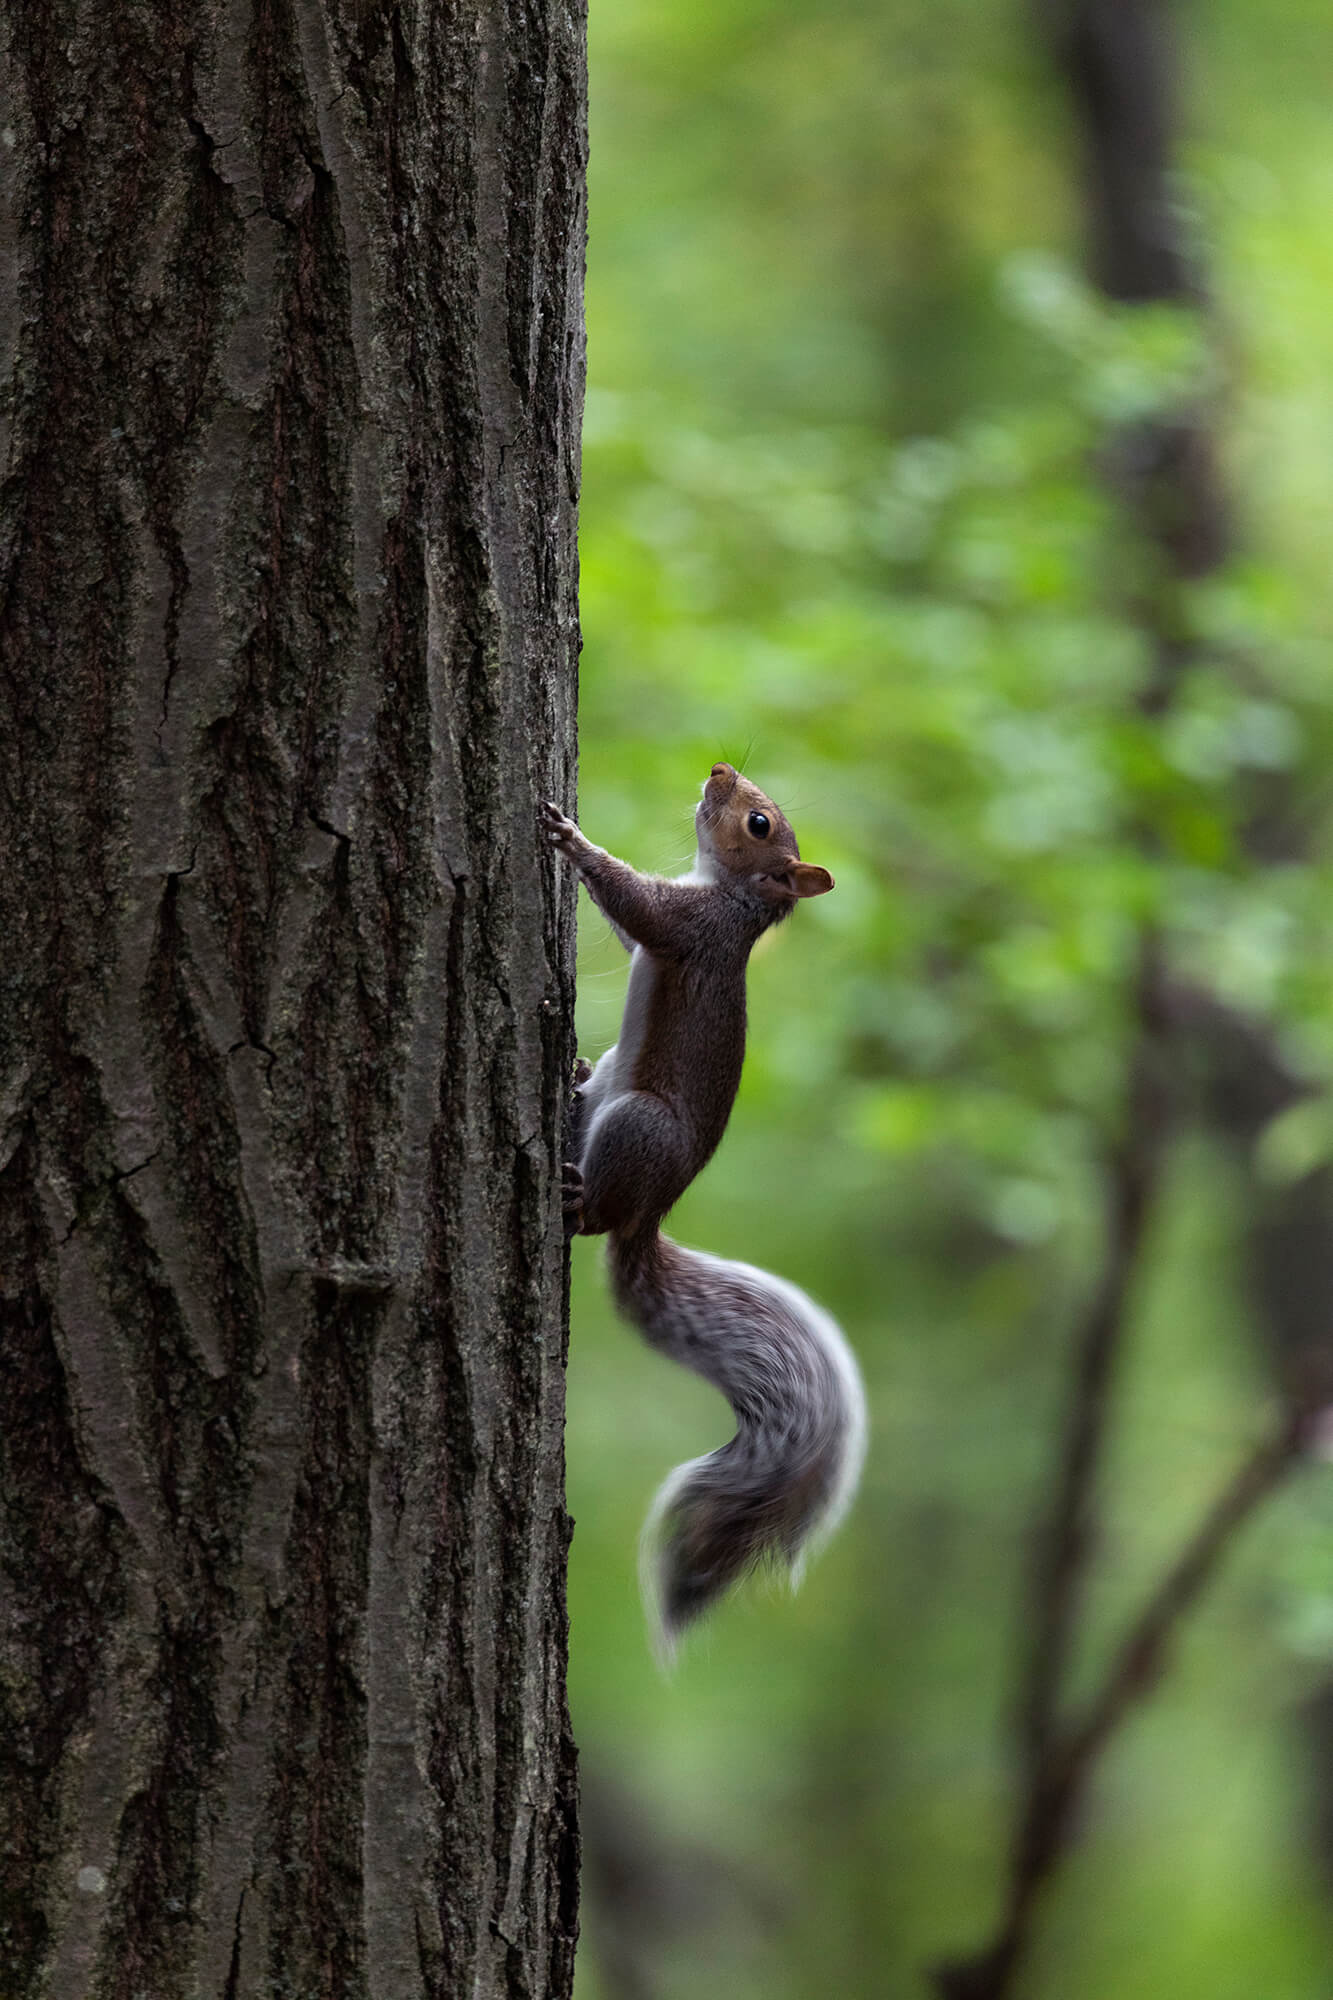 Squirrel climbing a tree.